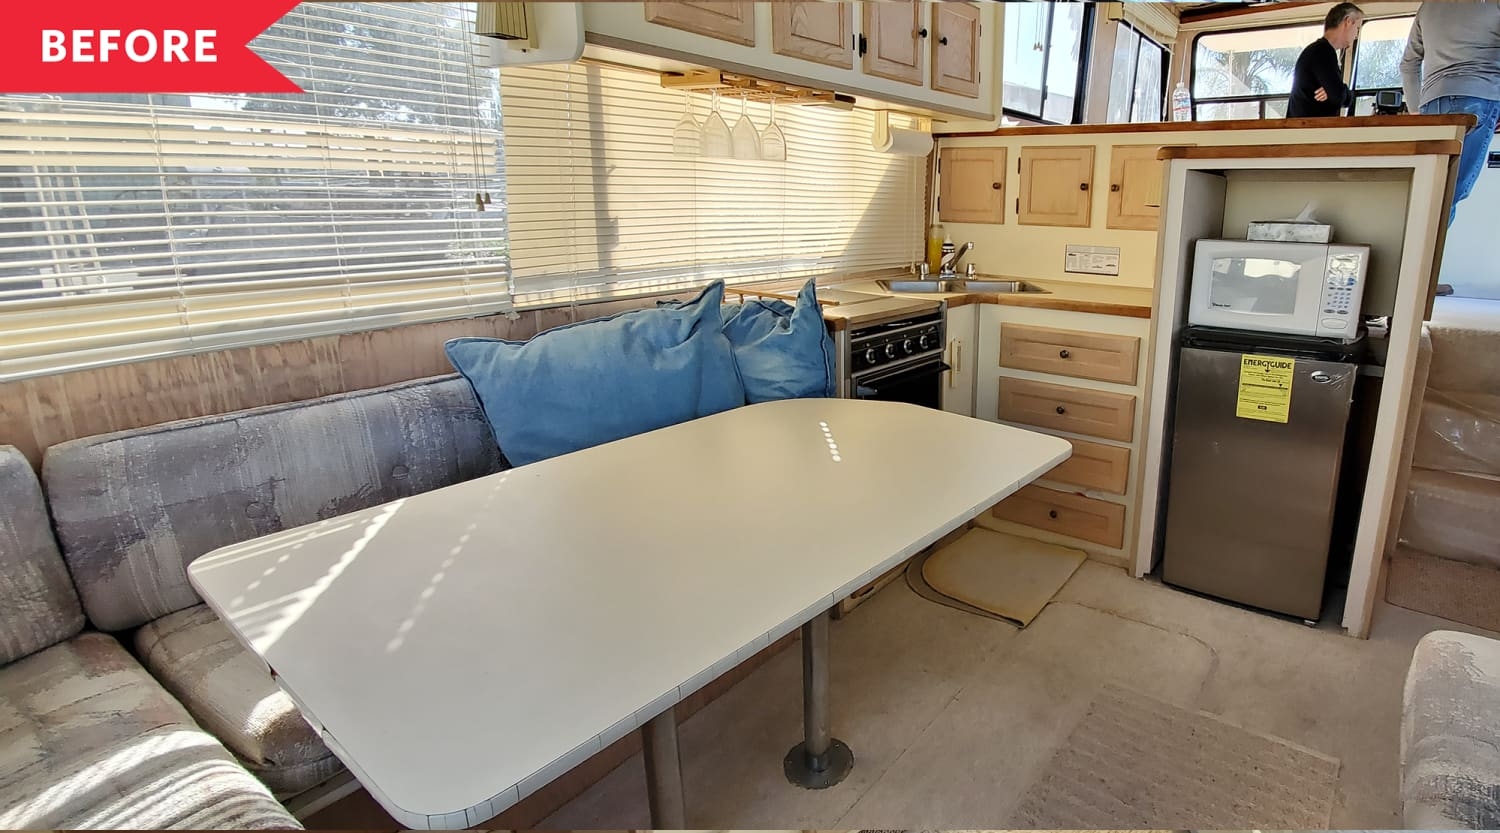 Before & After: A Dated 1990s Houseboat Was Renovated into a Modern, Bright Floating Tiny House